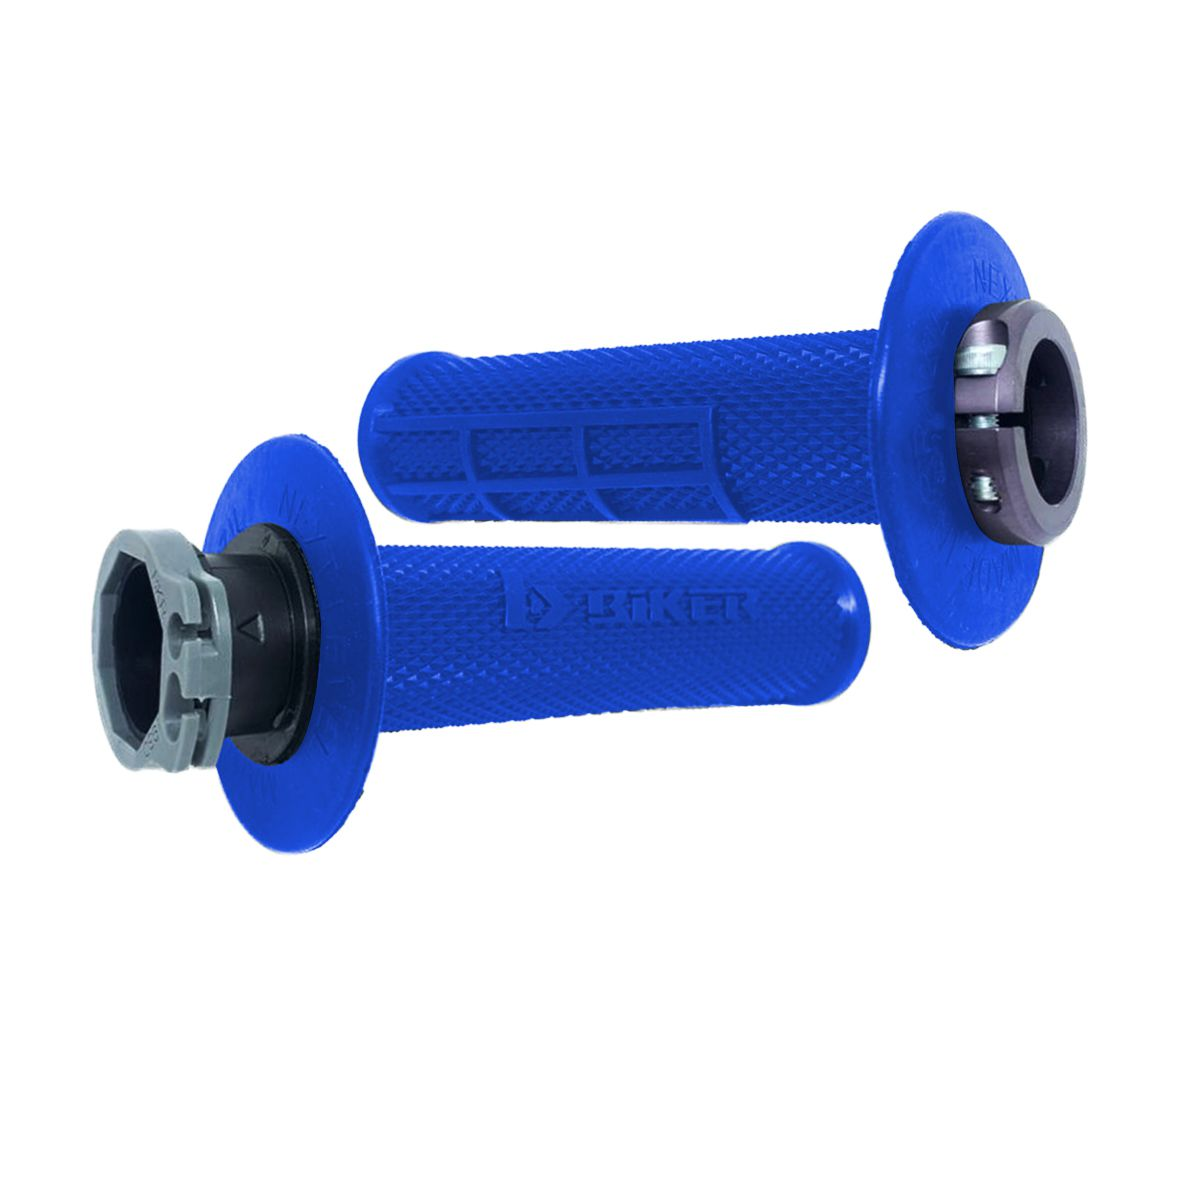 Manopla Lock On Biker Yz 250fx Yz 450fx Rmz 250 450